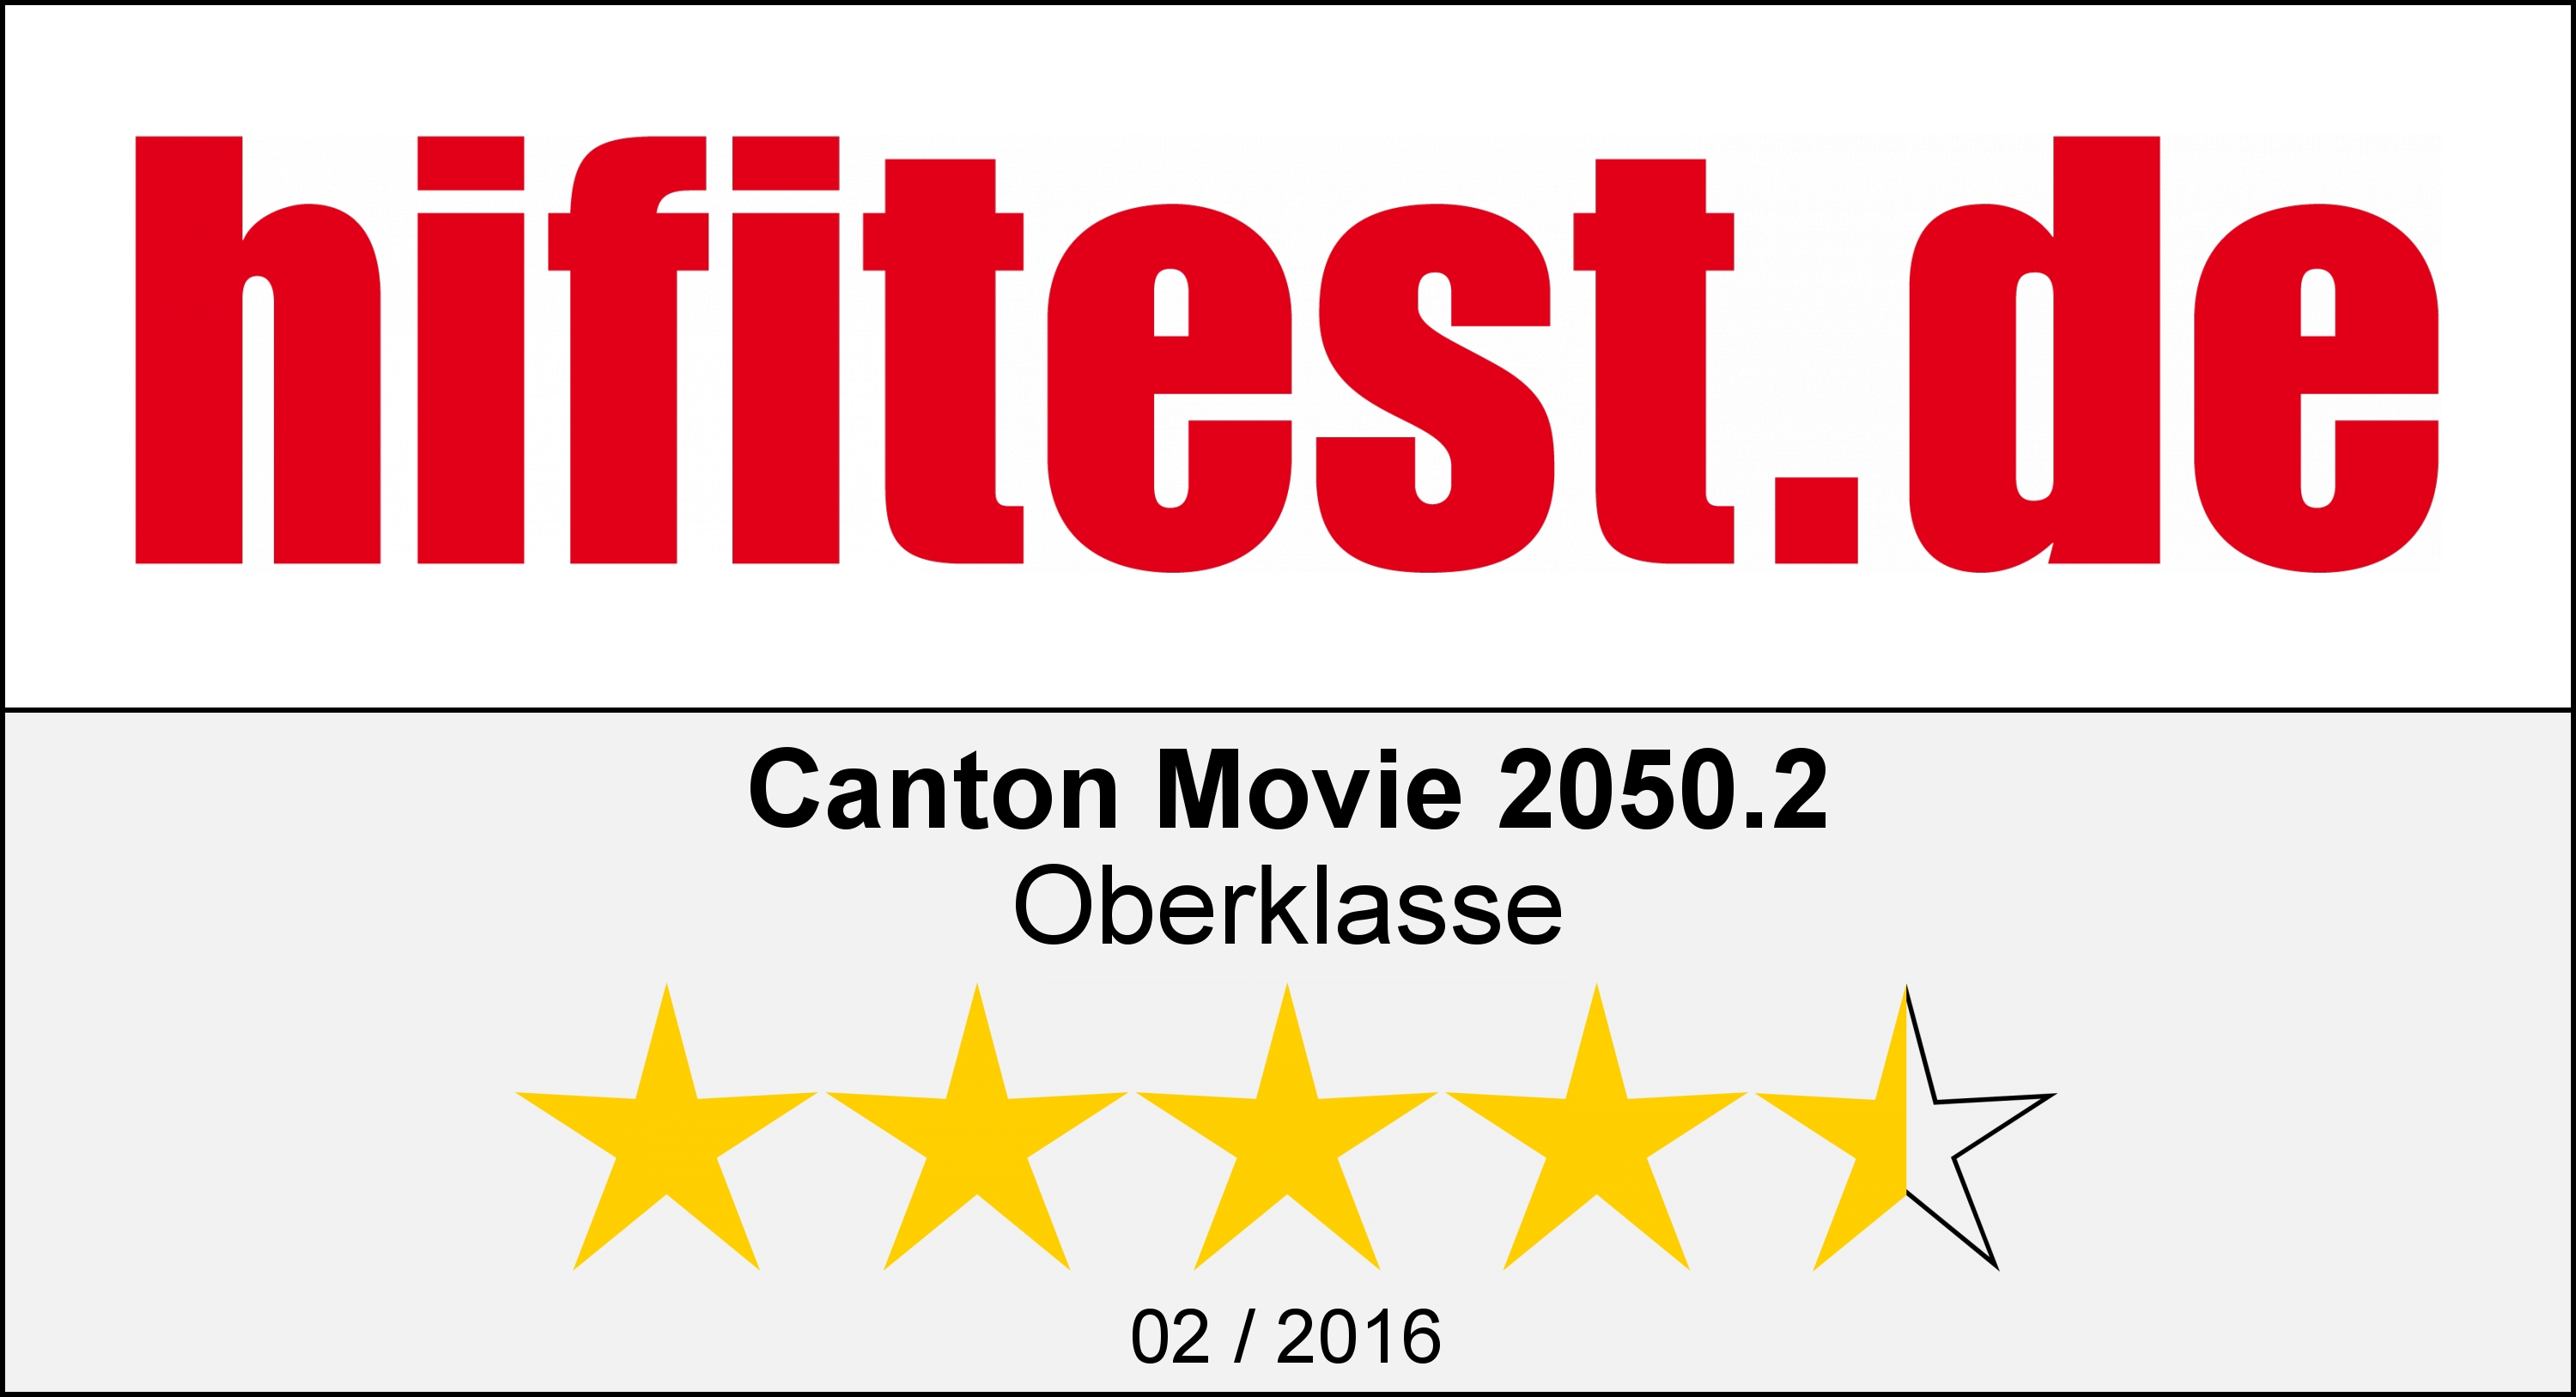 Movie_2050-2_hifitest-de